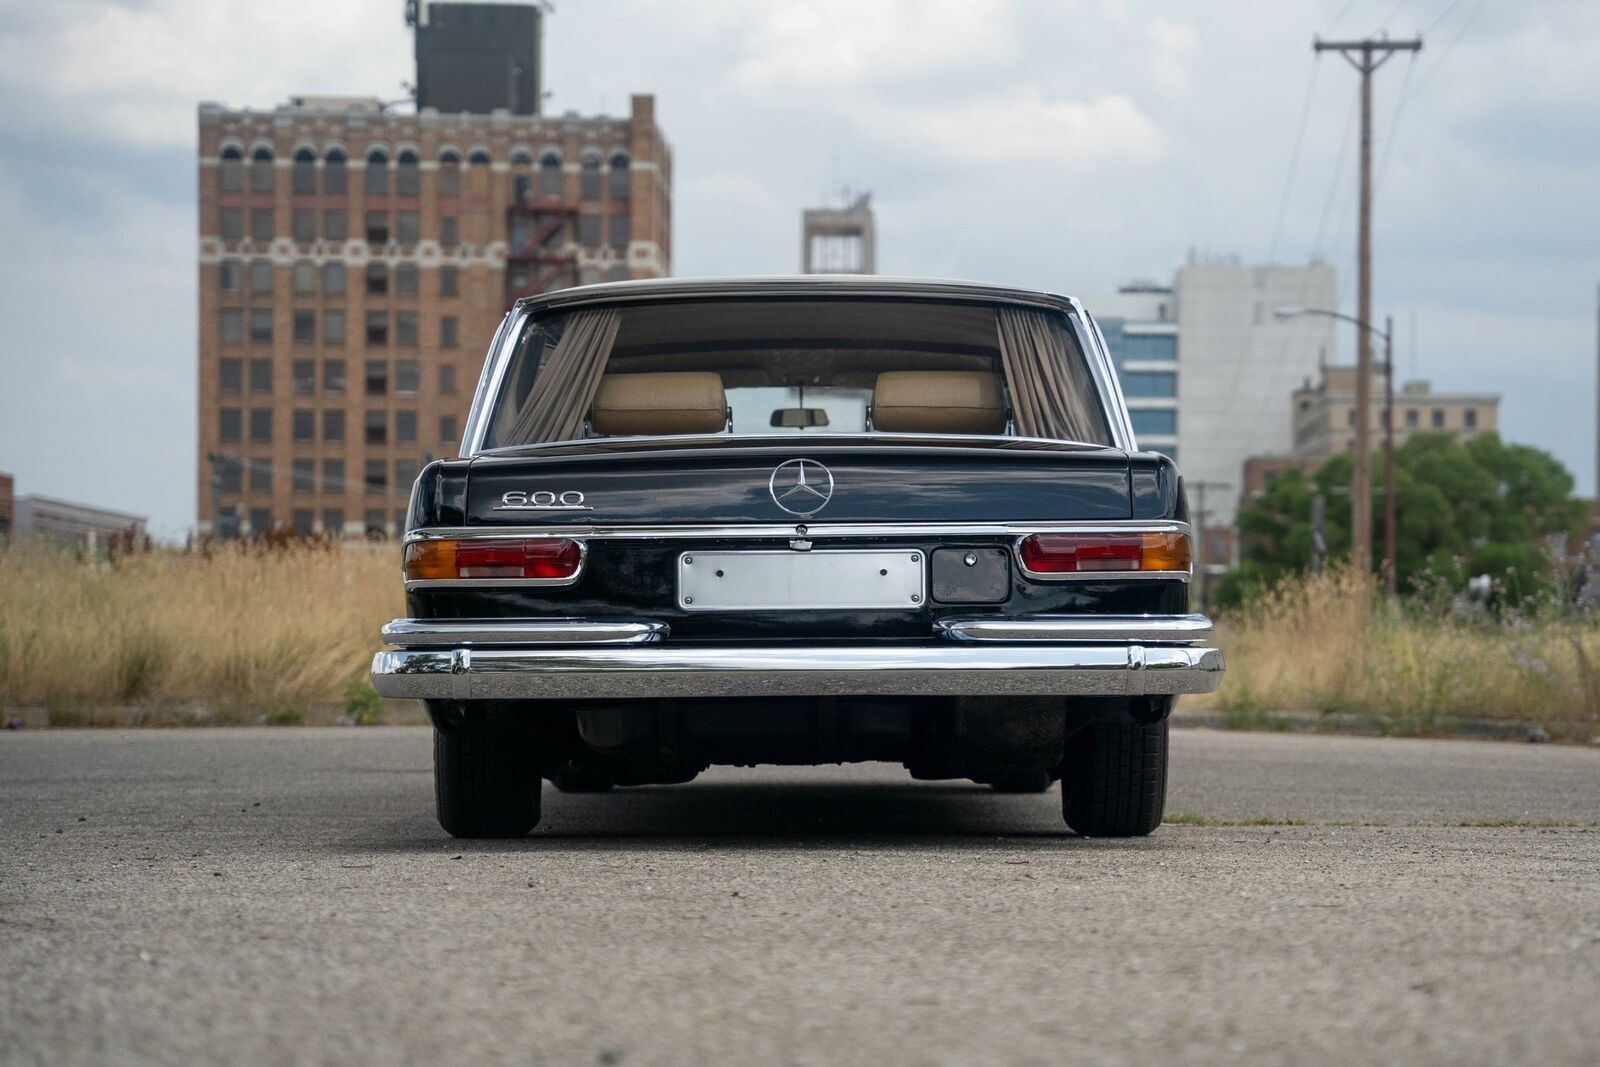 The Mercedes 600 Pullman sat on air suspension that cushioned the ride for VIP passengers.